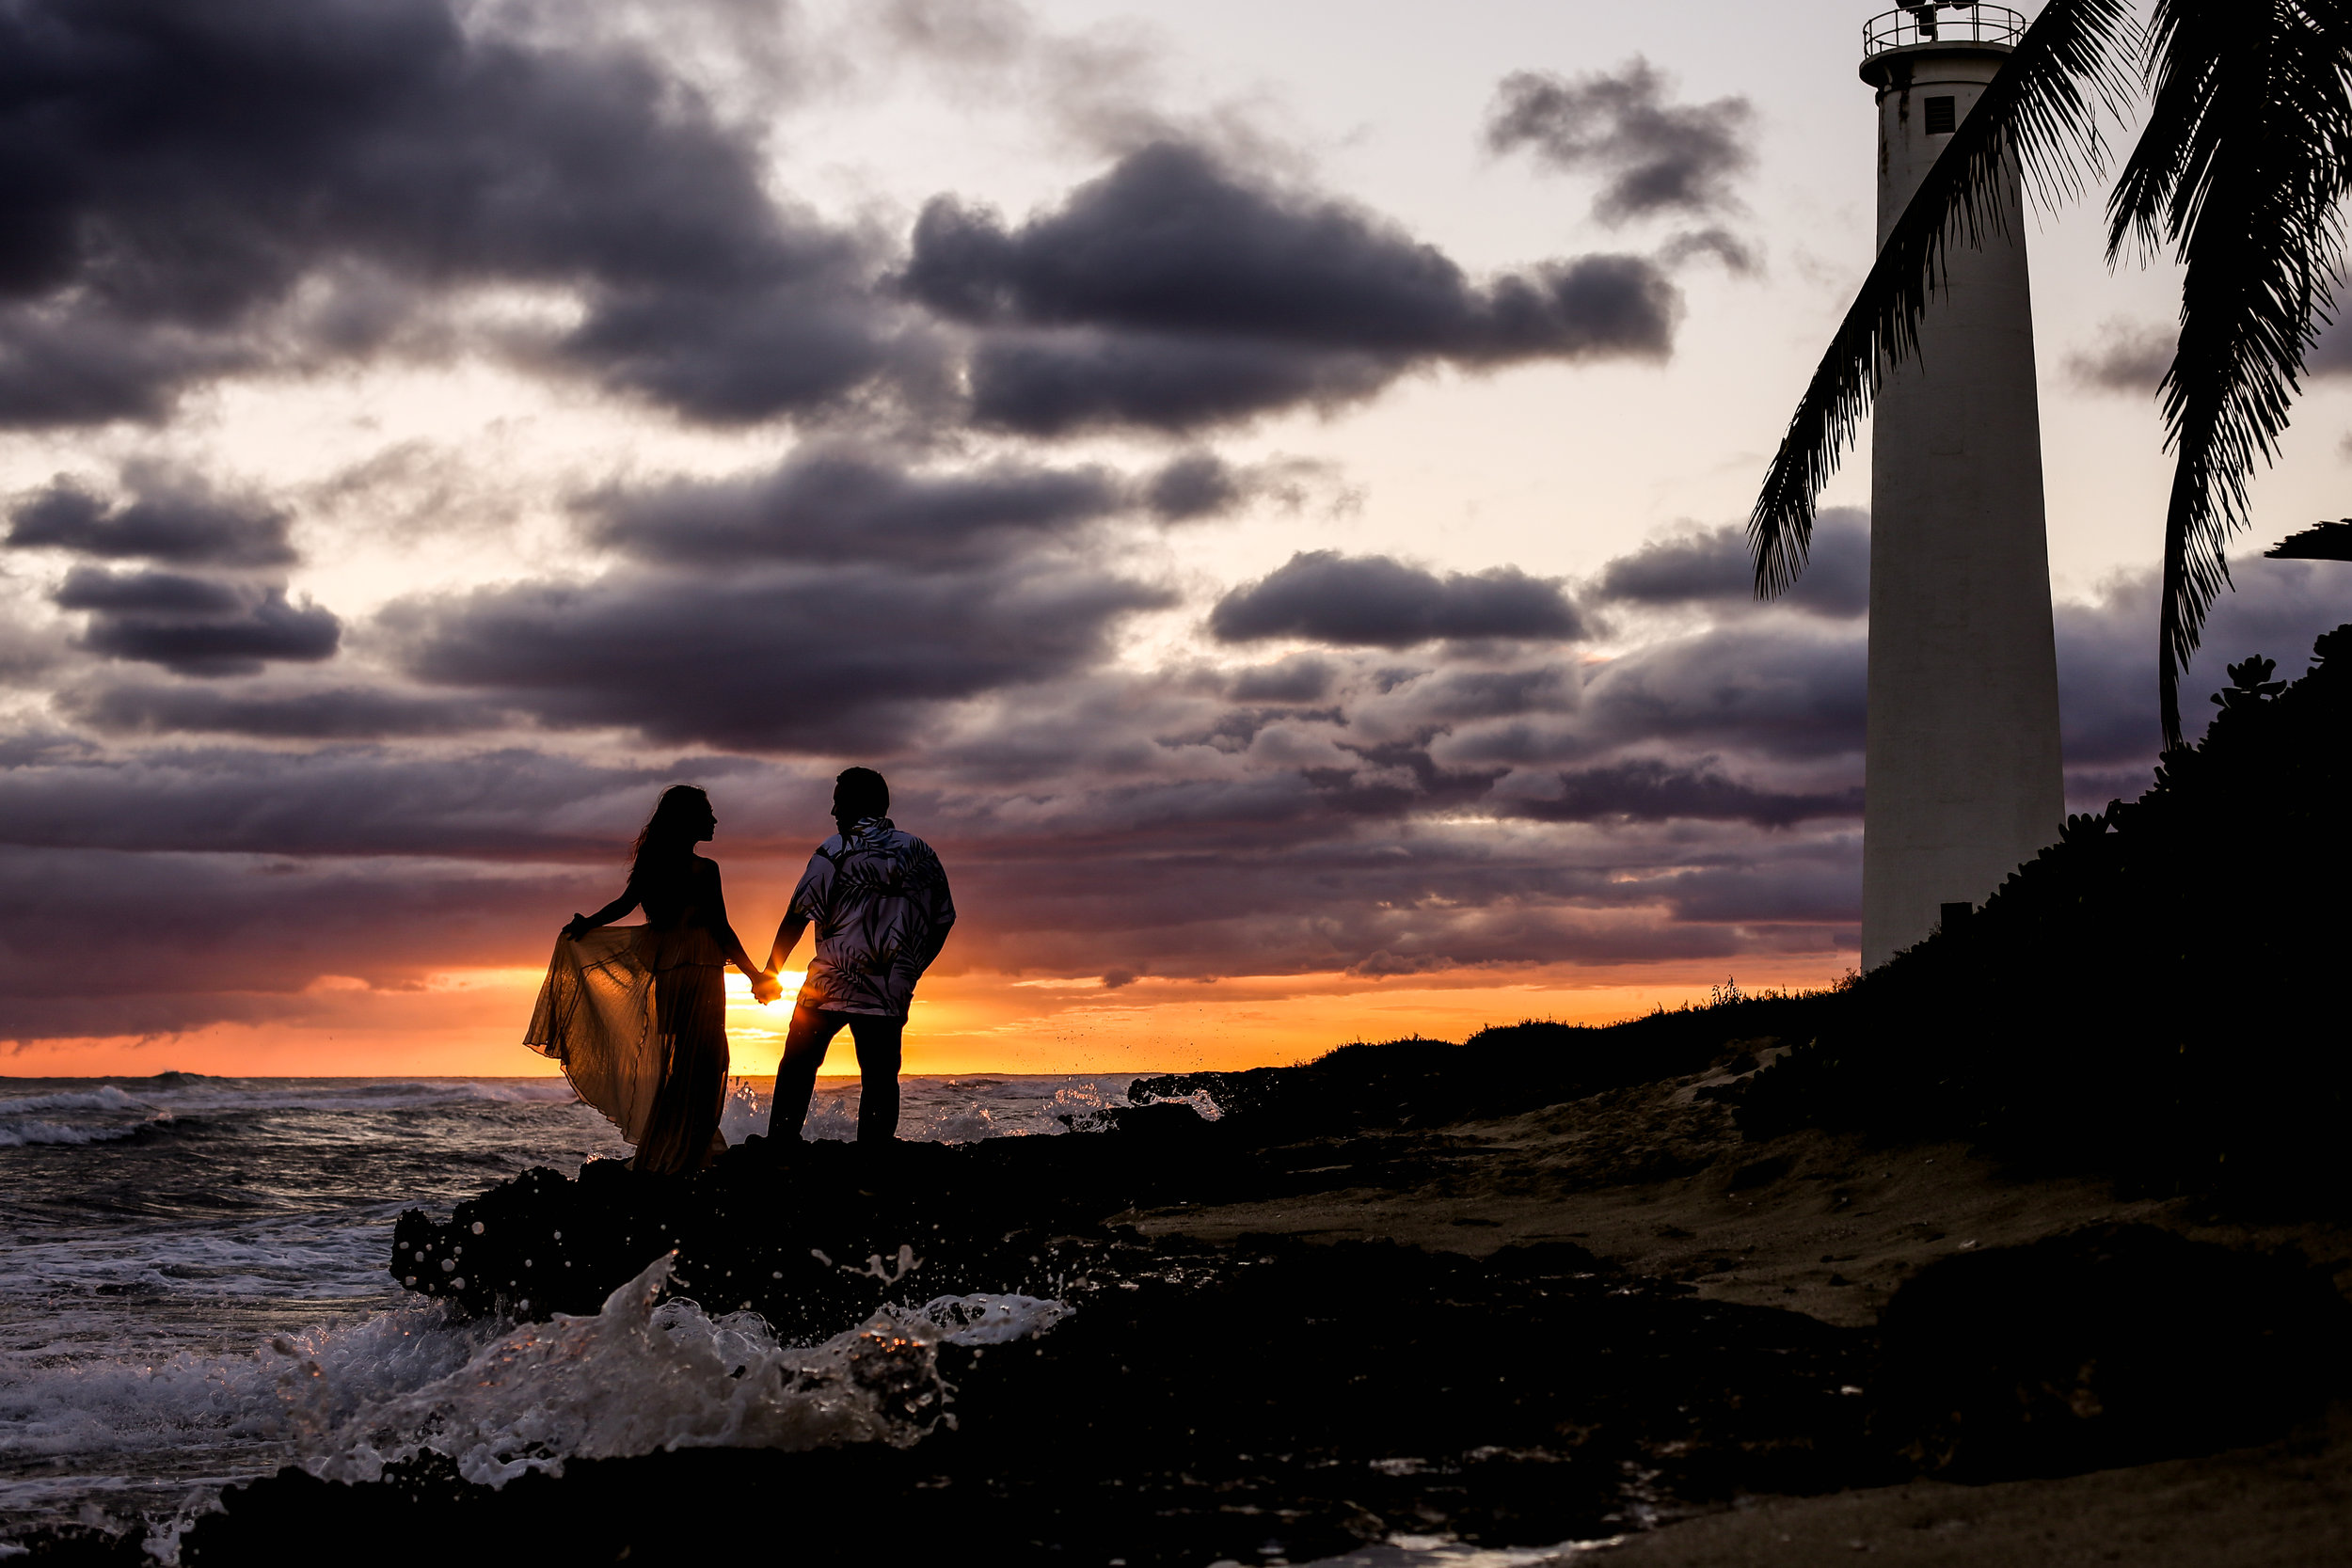 PRINT lighthouse Oliver and Ruth 46April 02, 2017.jpg